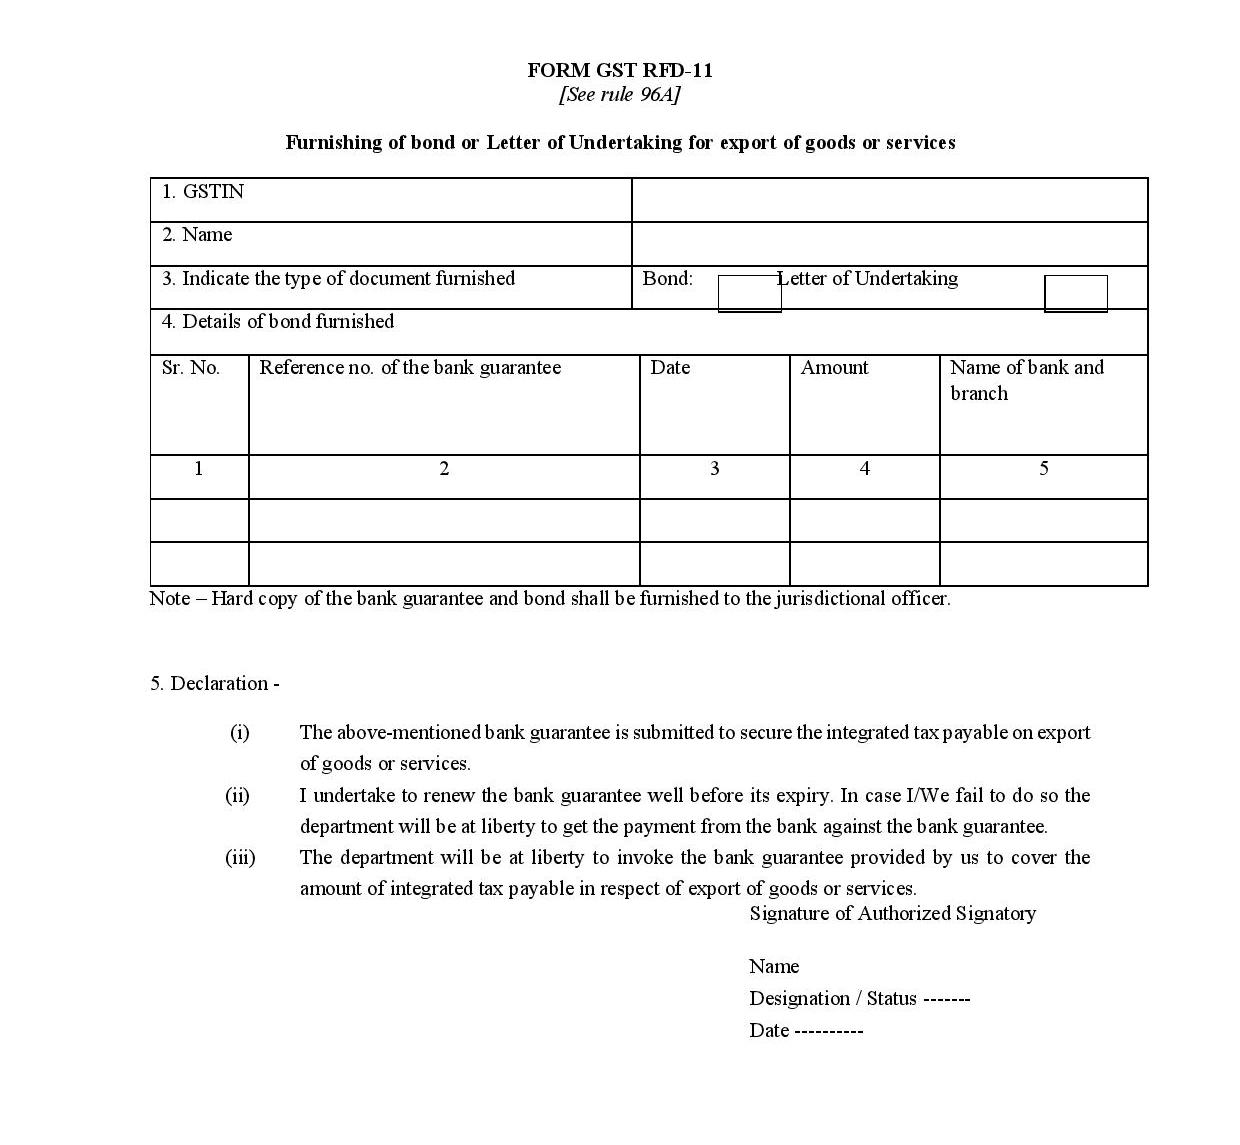 Gst export procedure under bond or letter of undertaking ritul form gst rfd 11 letter of undertaking thecheapjerseys Choice Image